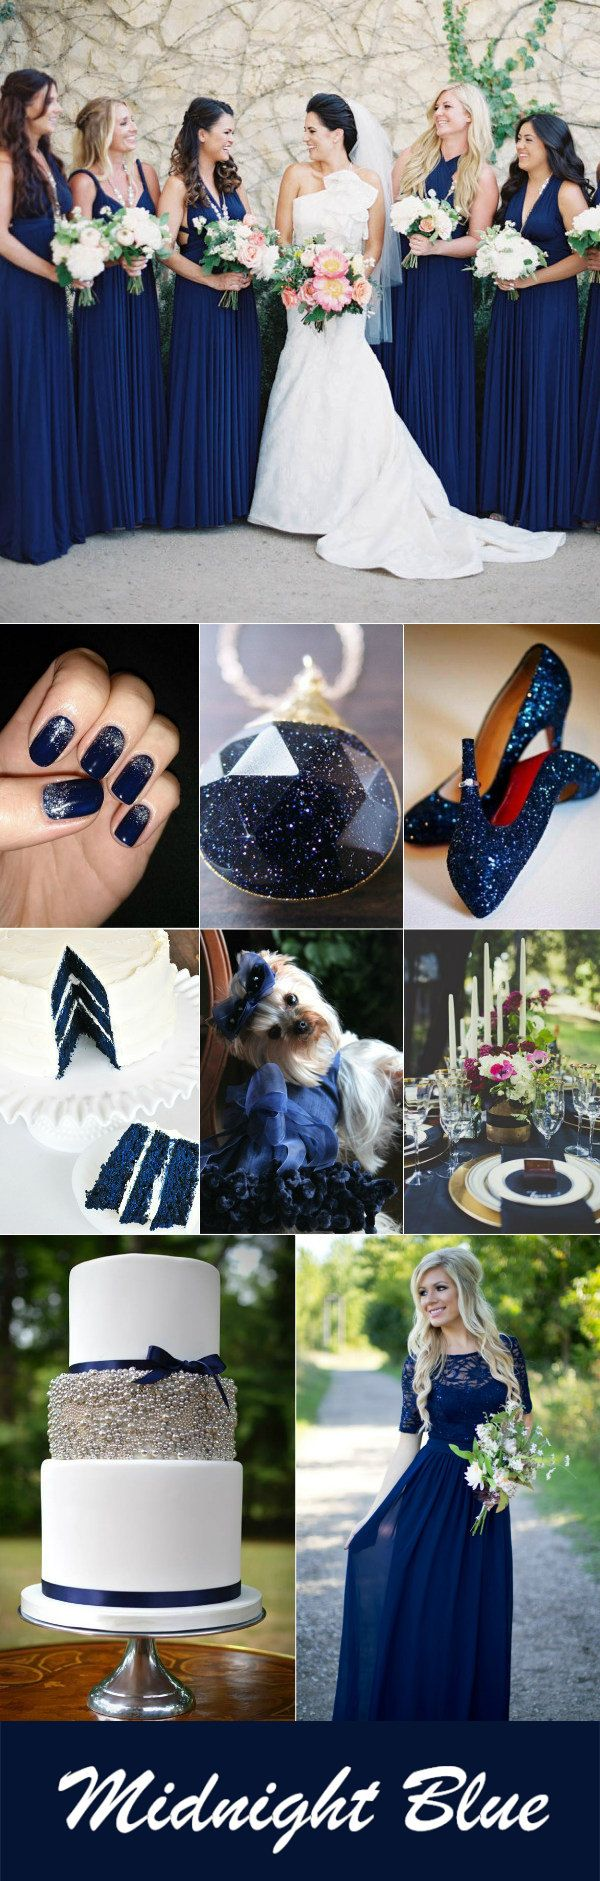 Top 10 Wedding Color Palettes In Shades Of Blue PartⅠ